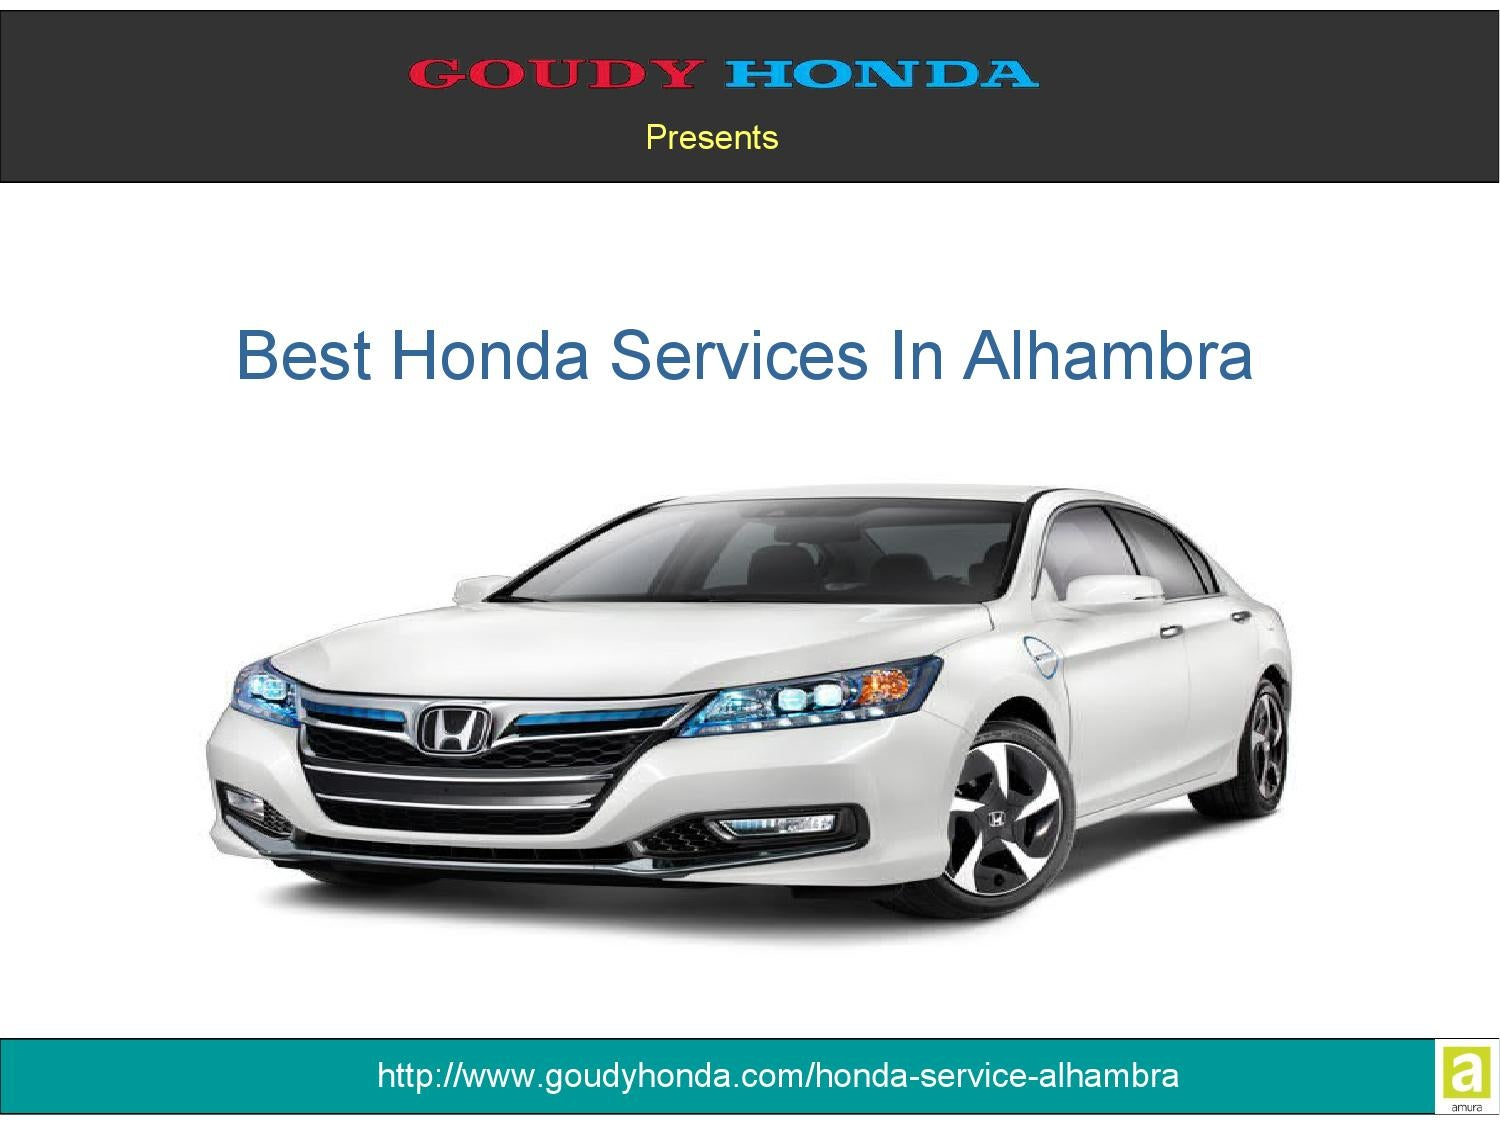 Best Honda Services In Alhambra By Goudy Honda Issuu